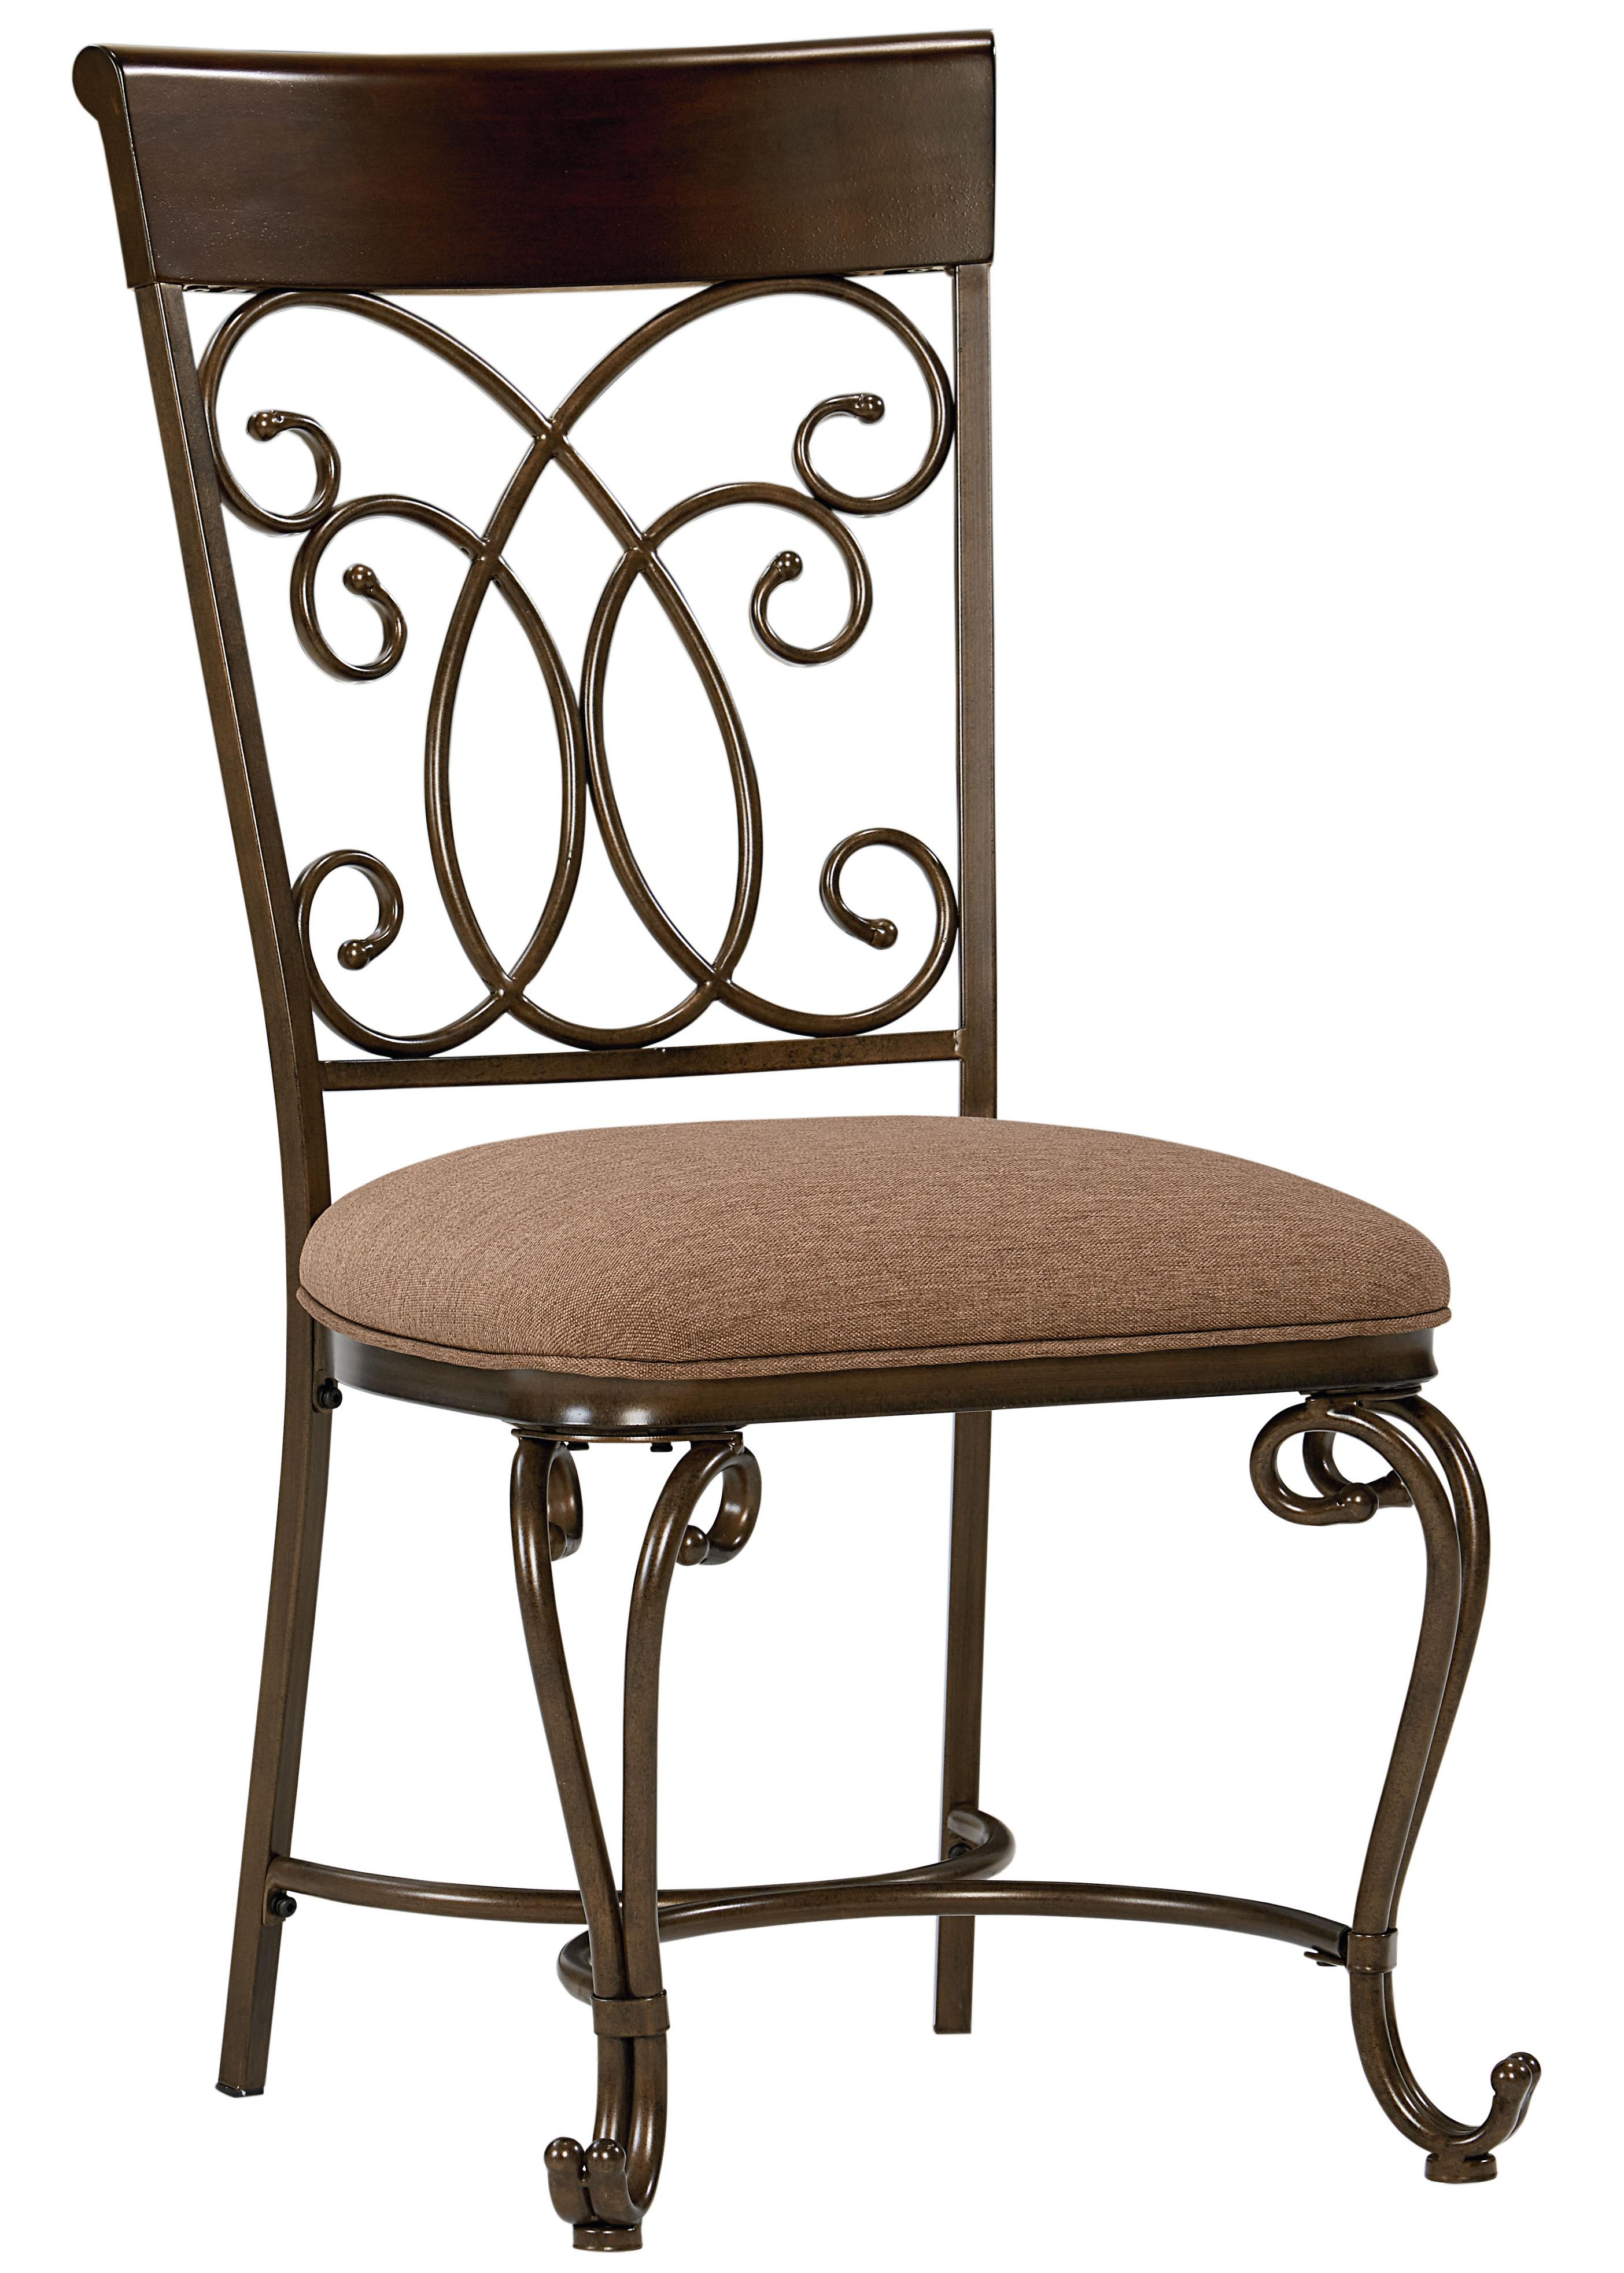 Exceptionnel Standard Furniture Bombay Side Chair   Item Number: 13424